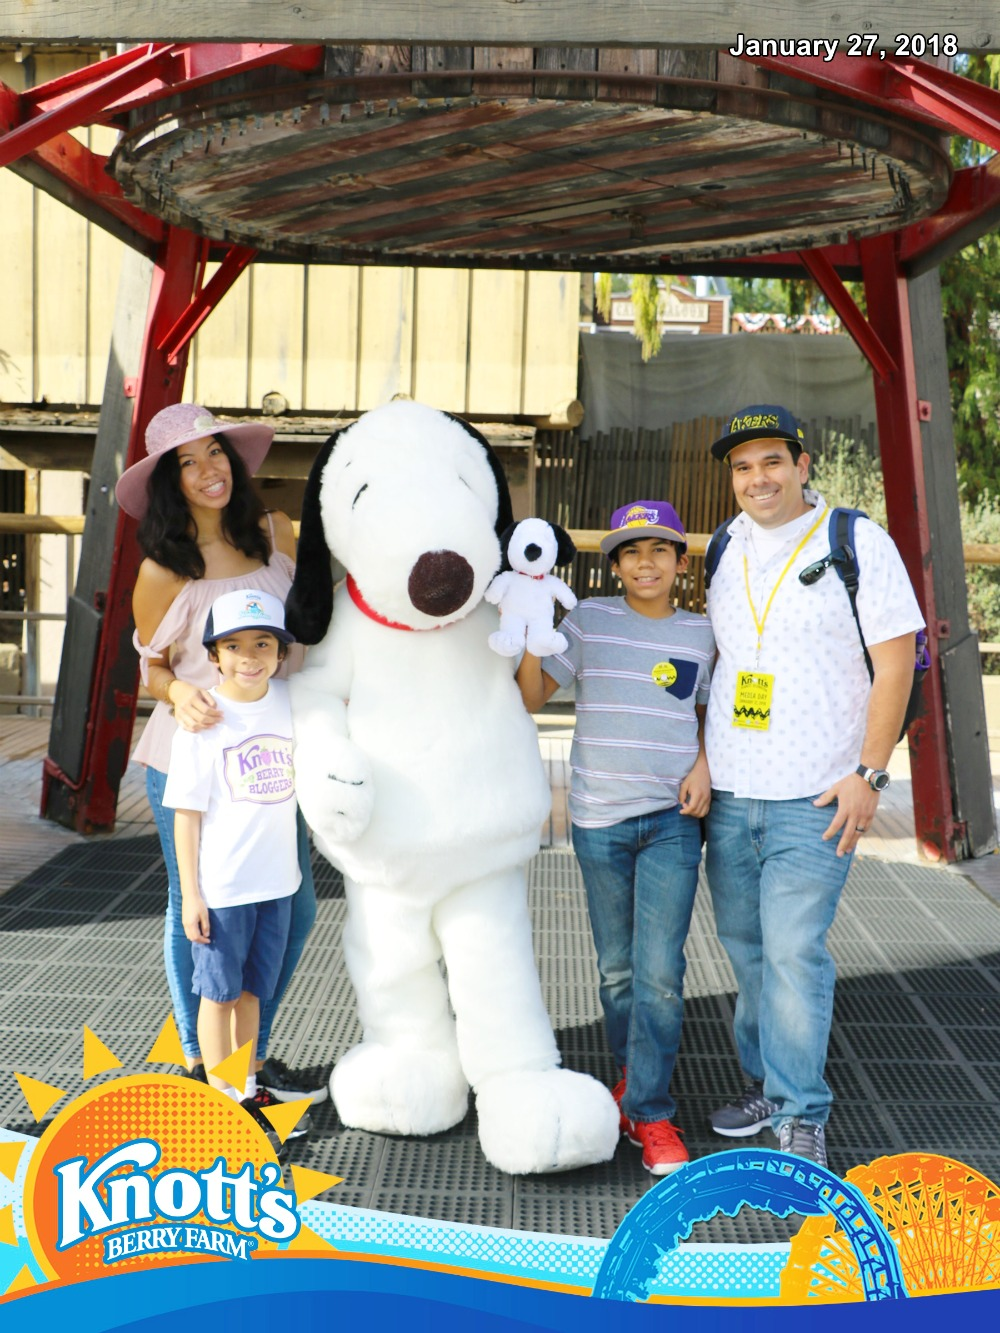 PEANUTS Celebration at Knott's Berry Farm in Buena Park. This is the complete family guide. - LivingMiVidaLoca.com